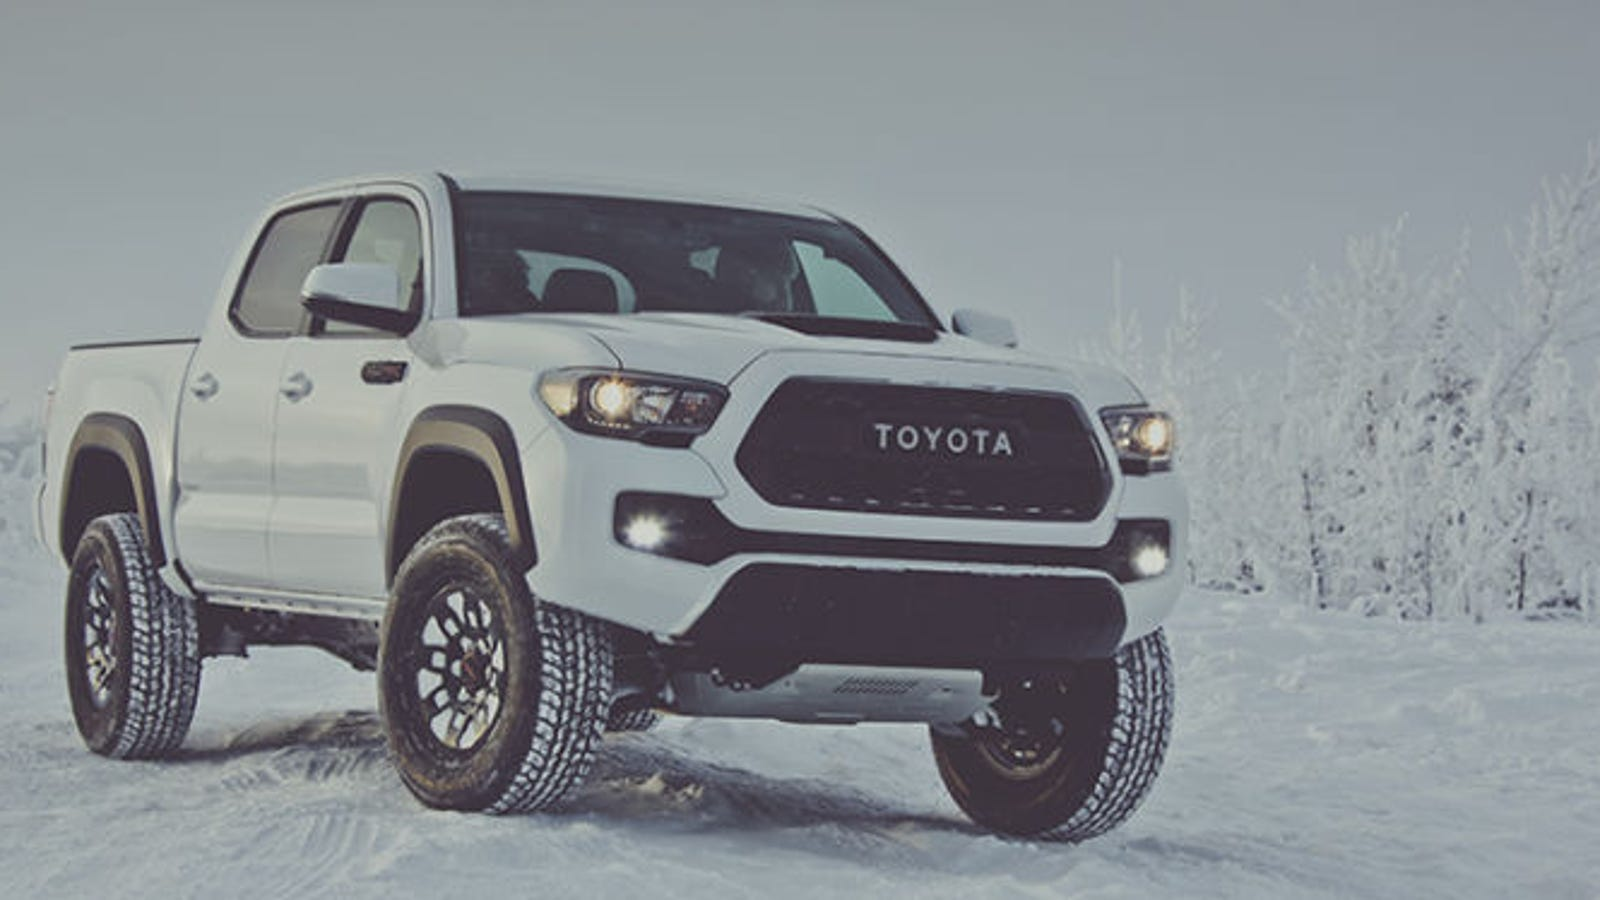 The 2017 Toyota Tacoma Trd Pros 41700 Msrp Is Tough To Justify Long Bed Fuel Hostage Wheels